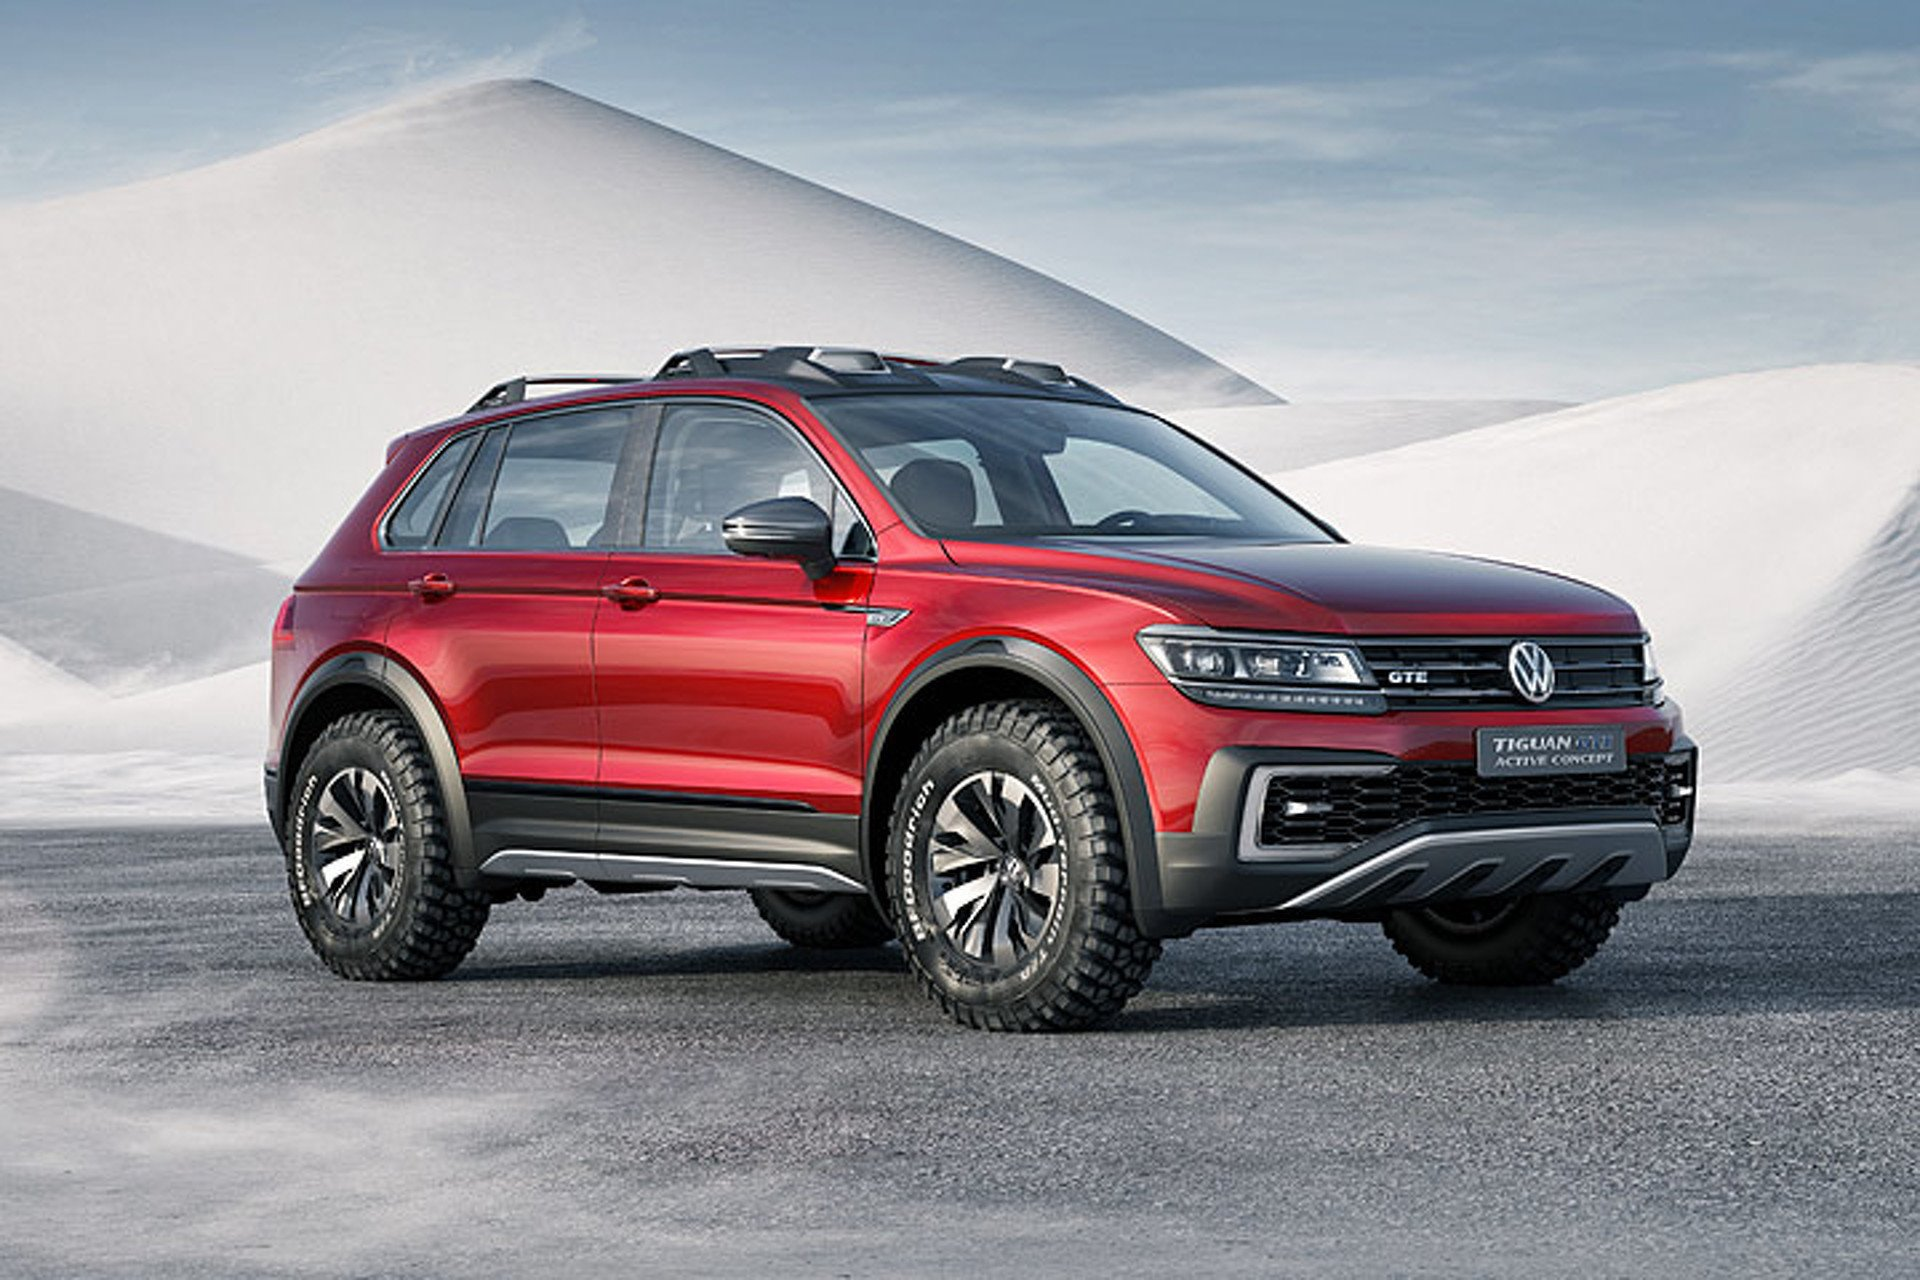 New 2019 Volkswagen-Tiguan 2.0T SEL 4Motion Tiguan 2.0T SEL 4Motion for sale $33,095 at M and V Leasing in Brooklyn NY 11223 1